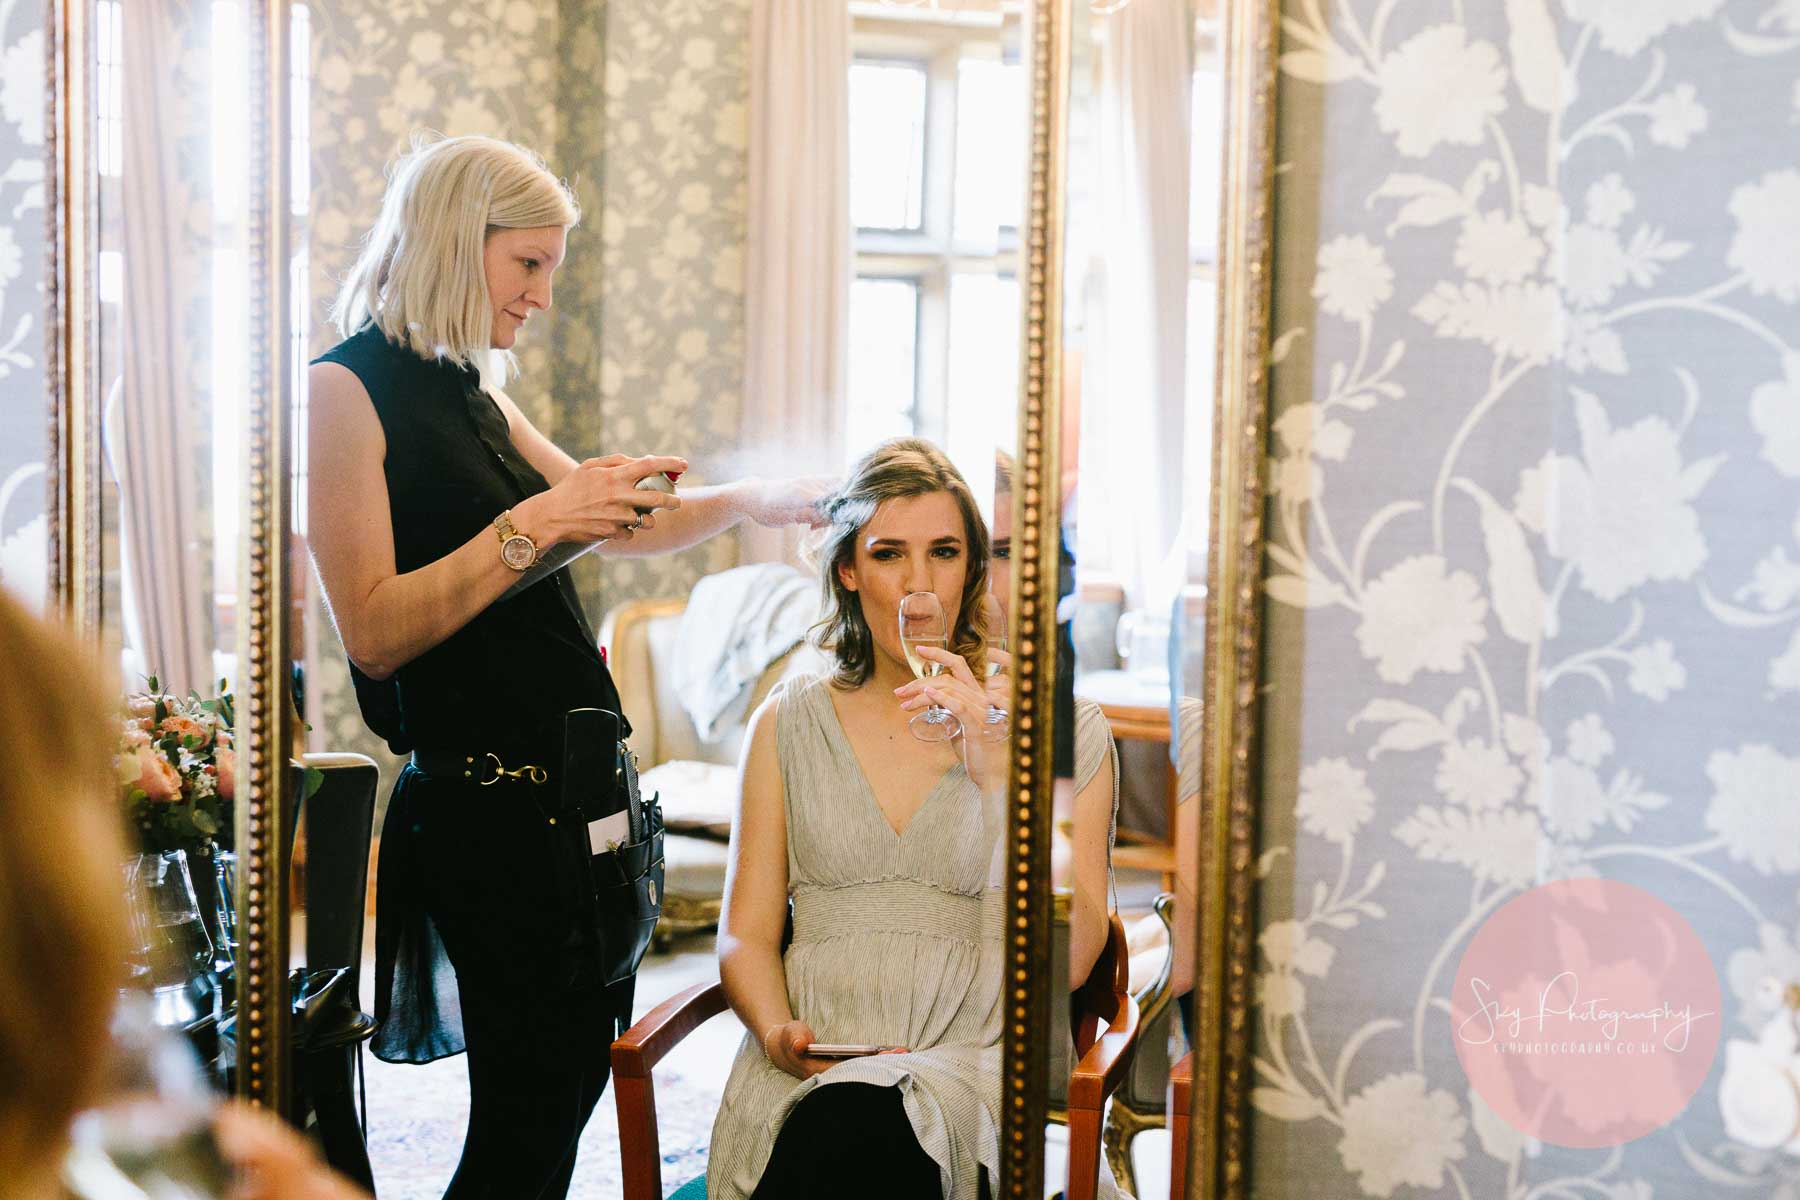 Bride Preparations at Plum park